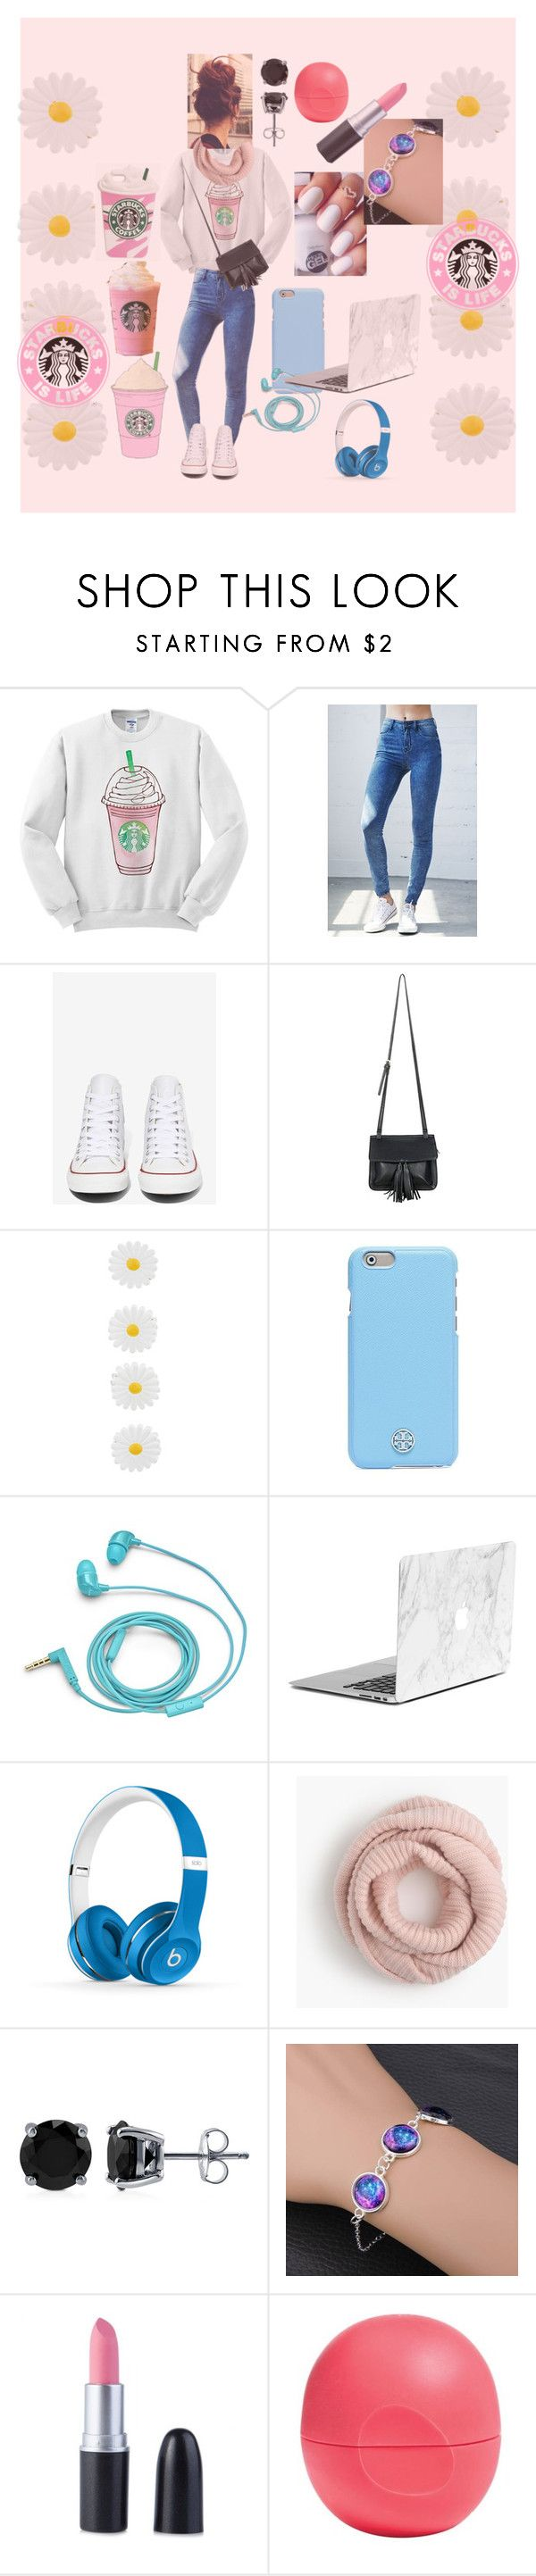 """Actually family is life"" by miaaa08 ❤ liked on Polyvore featuring Bullhead Denim Co., Converse, Chicnova Fashion, Accessorize, Tory Burch, FOSSIL, Beats by Dr. Dre, J.Crew, BERRICLE and Eos"